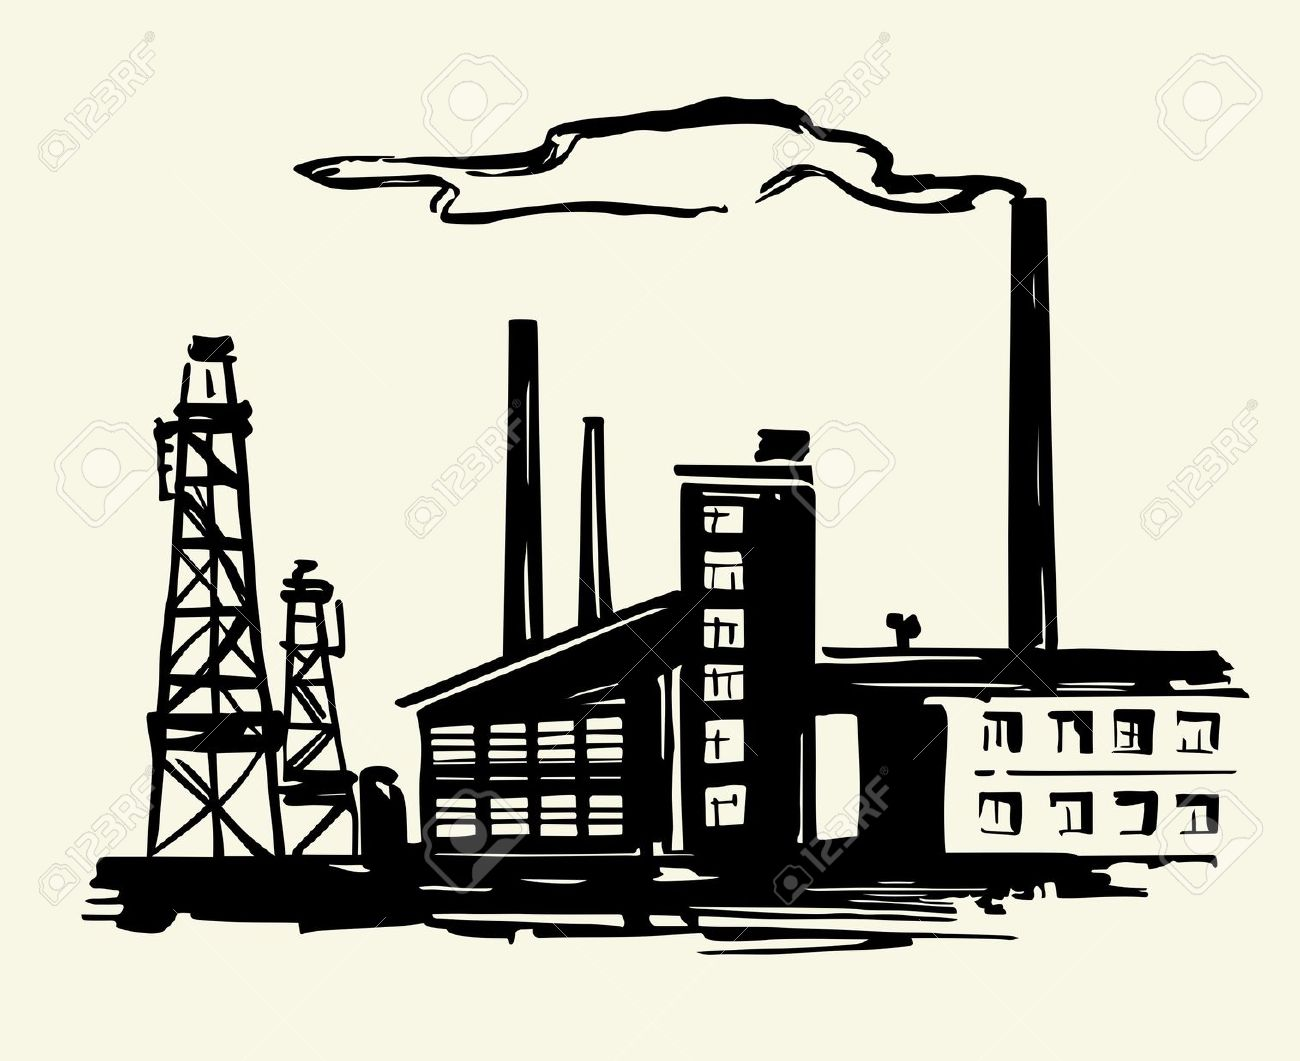 Industrial clipart #5, Download drawings